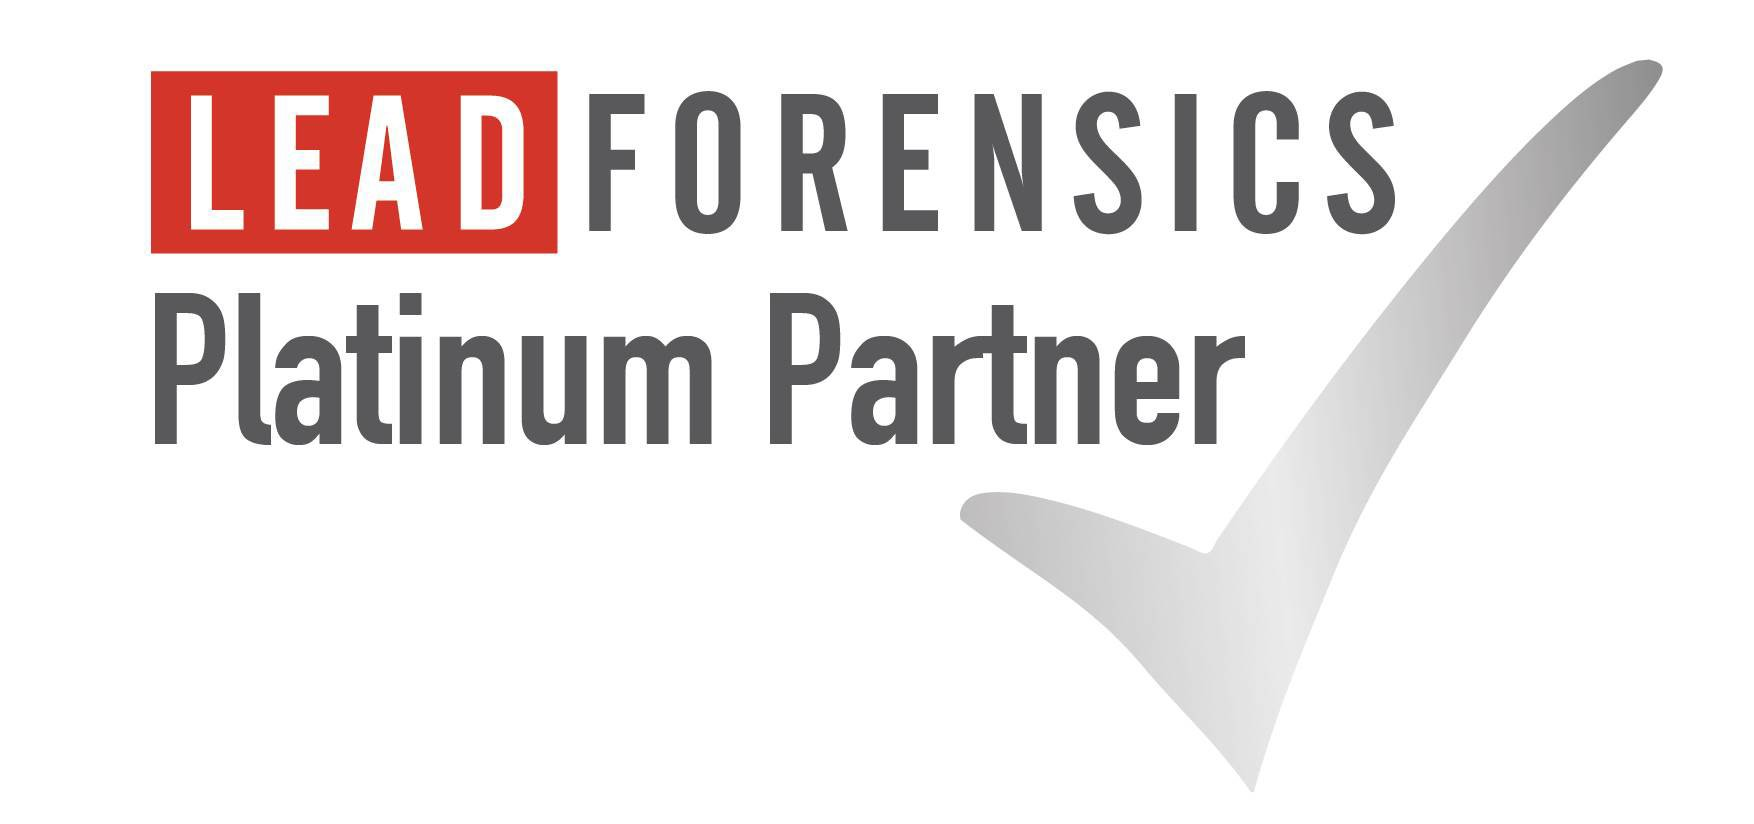 CMFG awarded platinum partner status by Lead Forensics